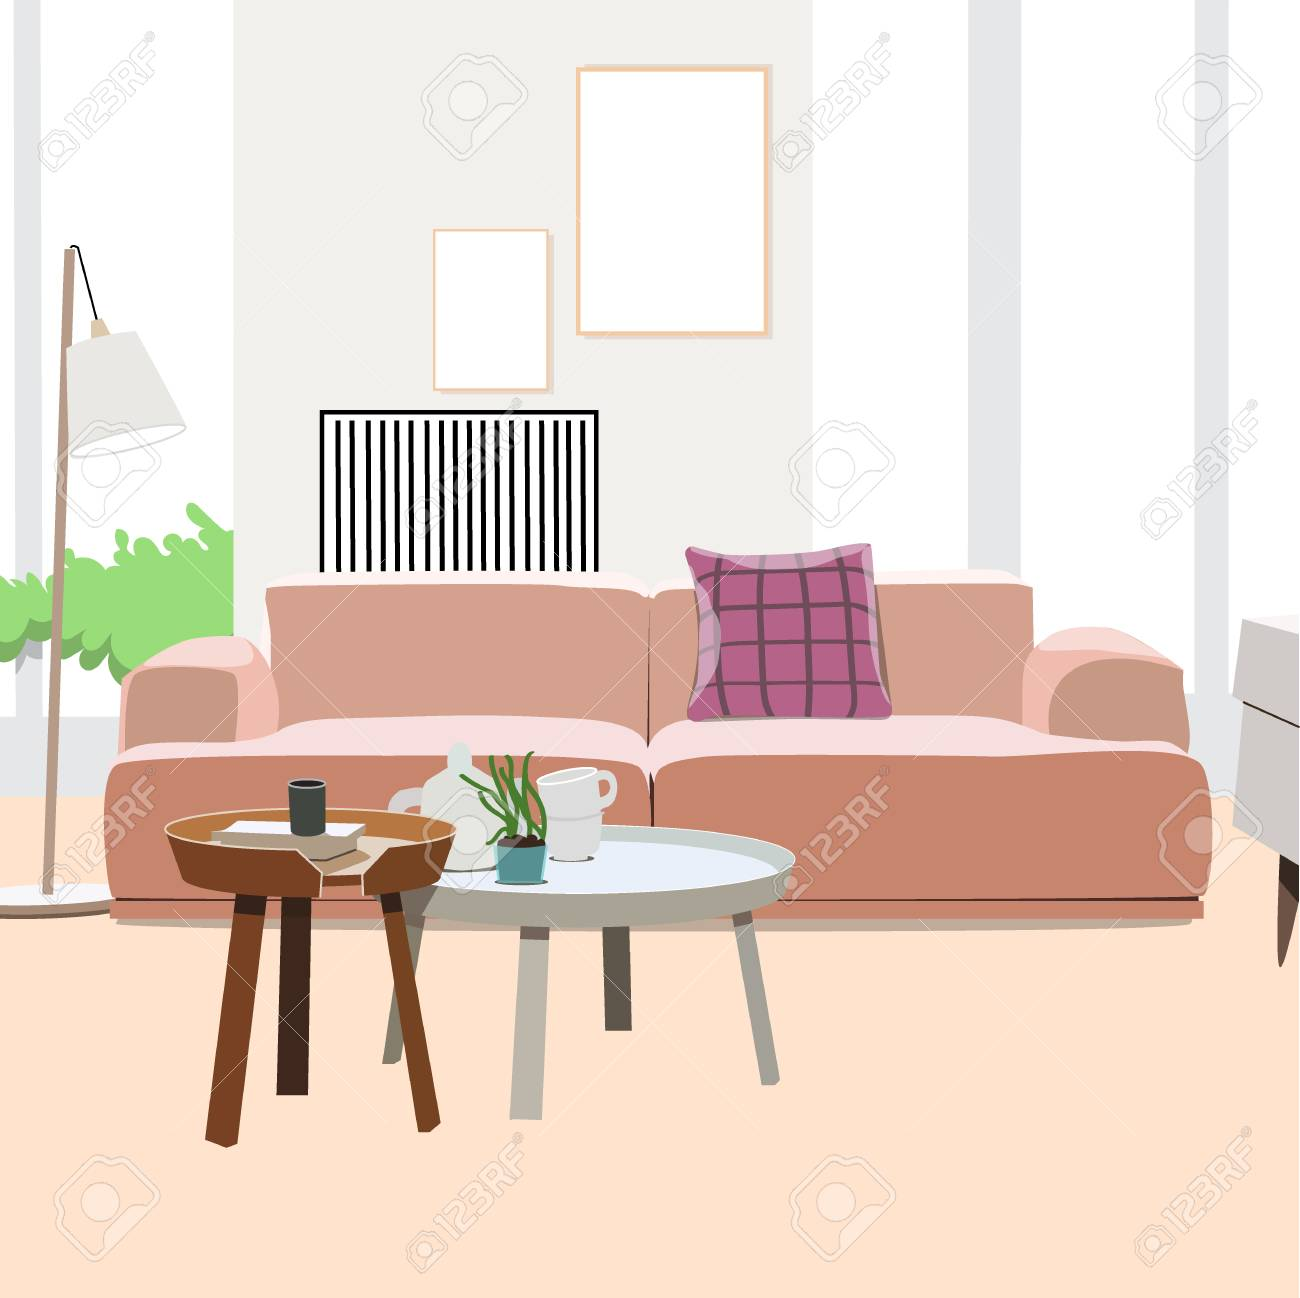 Awesome Living Room Interior Vector Illustration